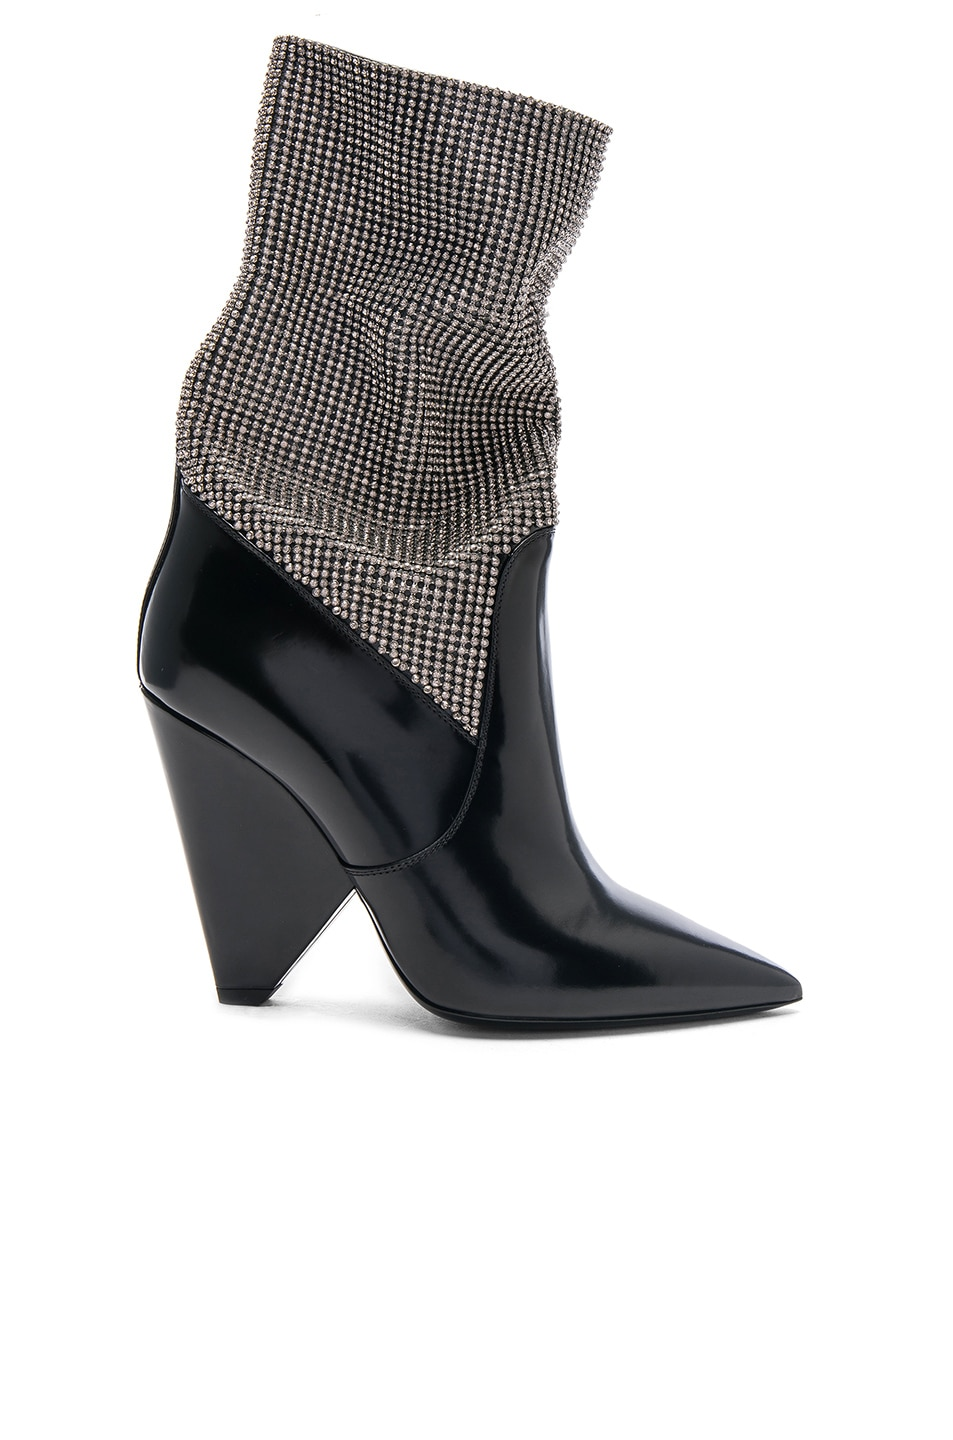 6a138cf410b6 Image 1 of Saint Laurent Mesh Crystal Embellished Niki Booties in Black